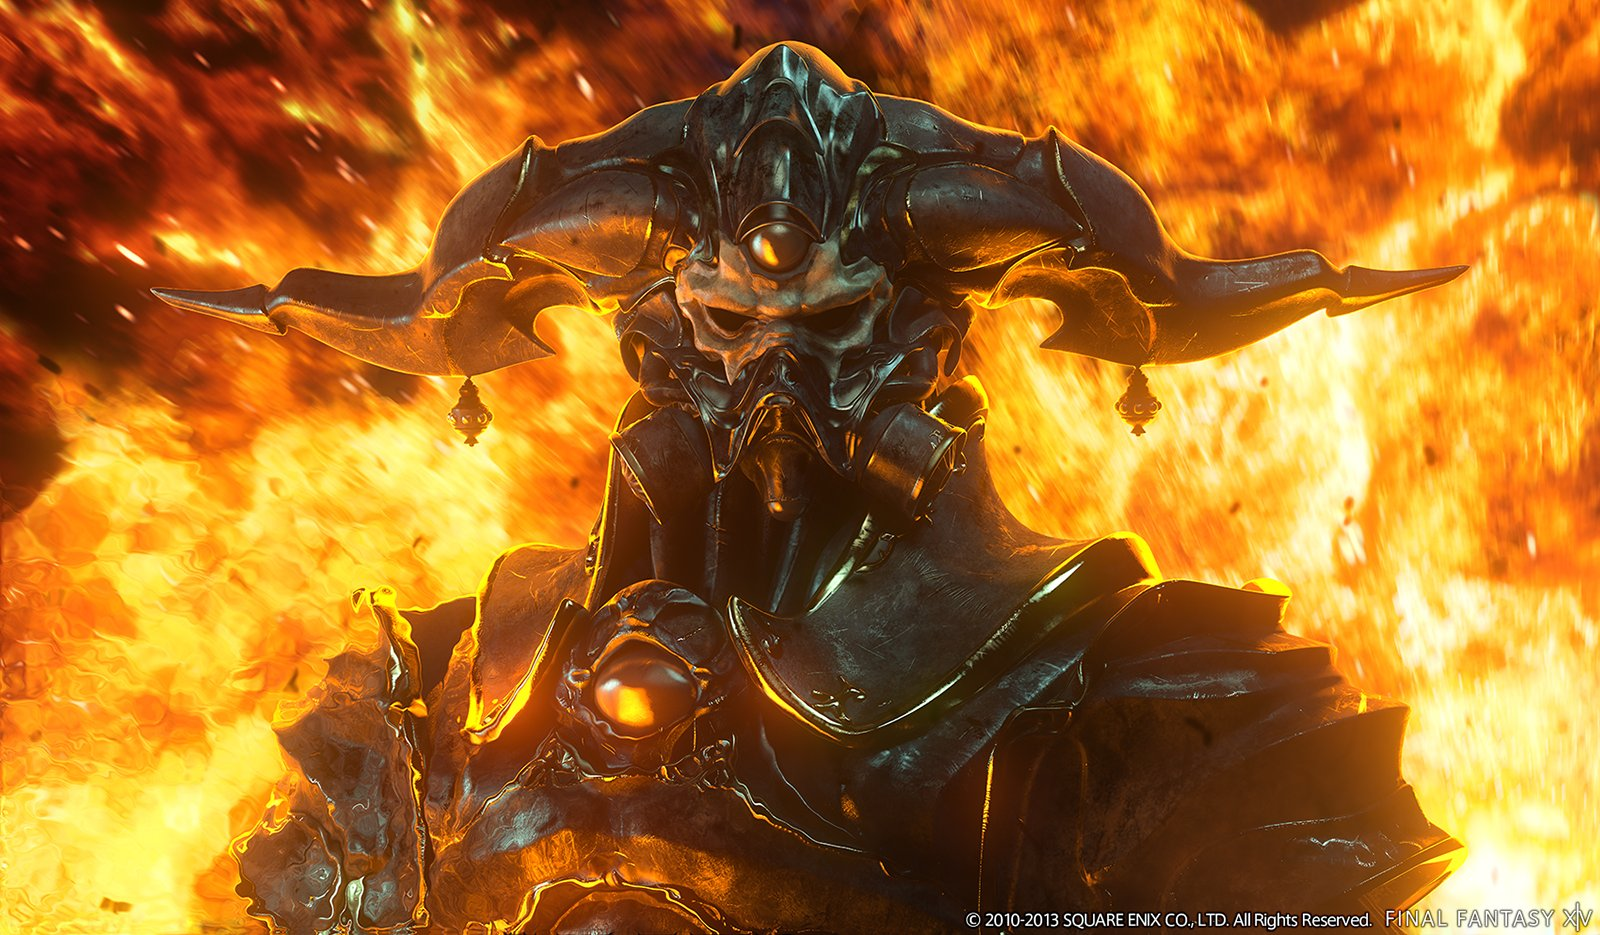 Final Fantasy XIV withdrawn from sale due to high demand